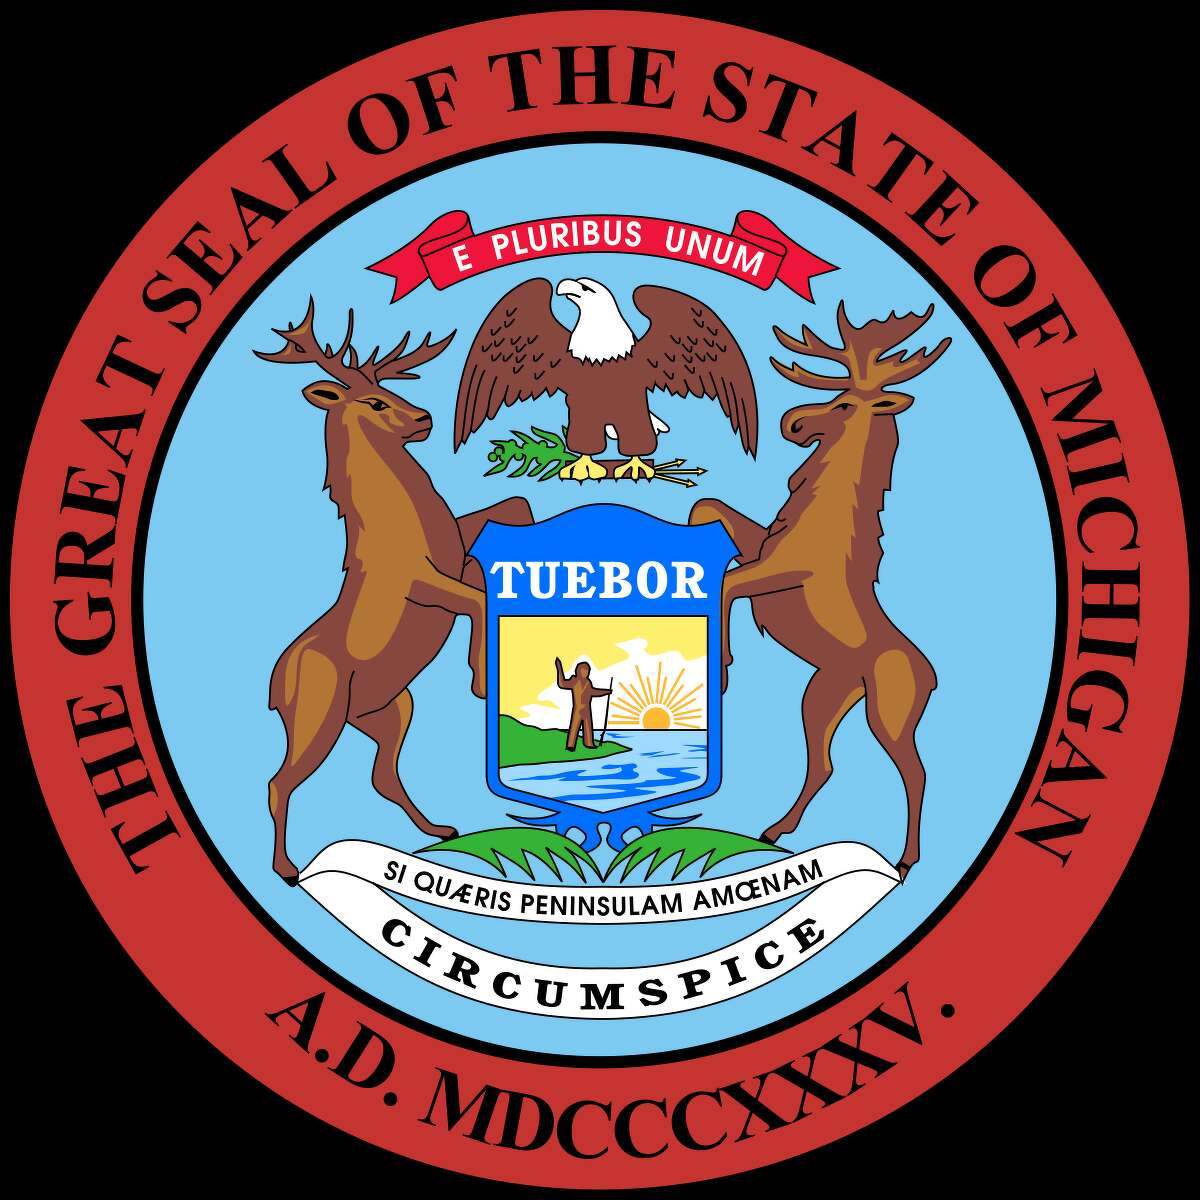 The state seal of Michigan